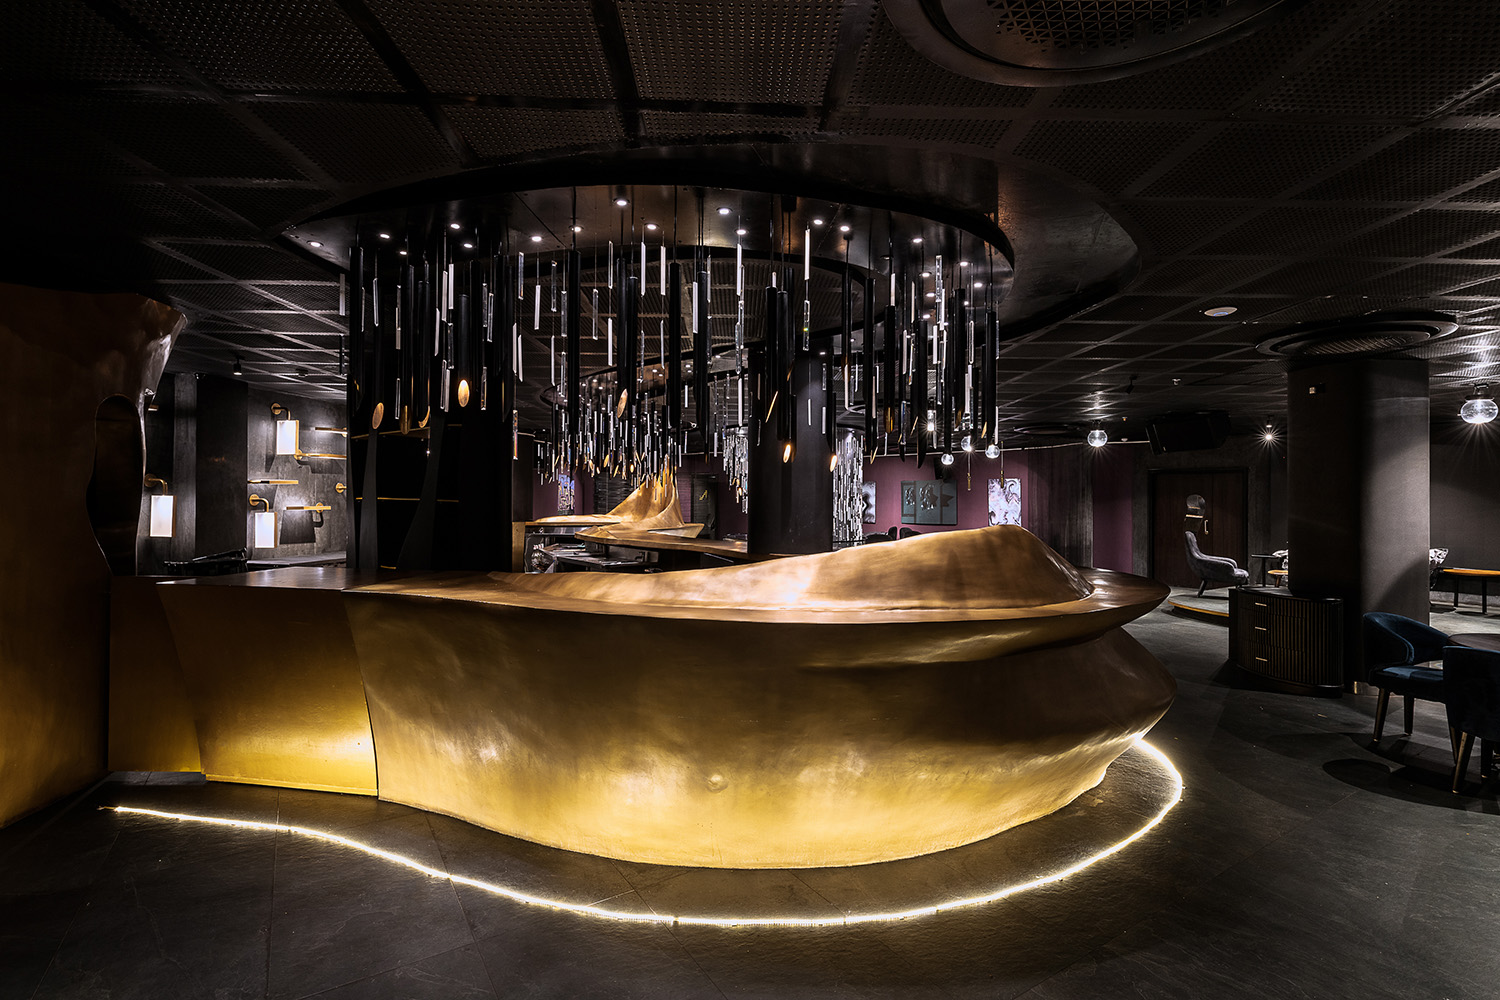 The Bar is conceived as a flowing wave pattern with its periodic rise & fall. ©Photographix | Sebastian + Ira